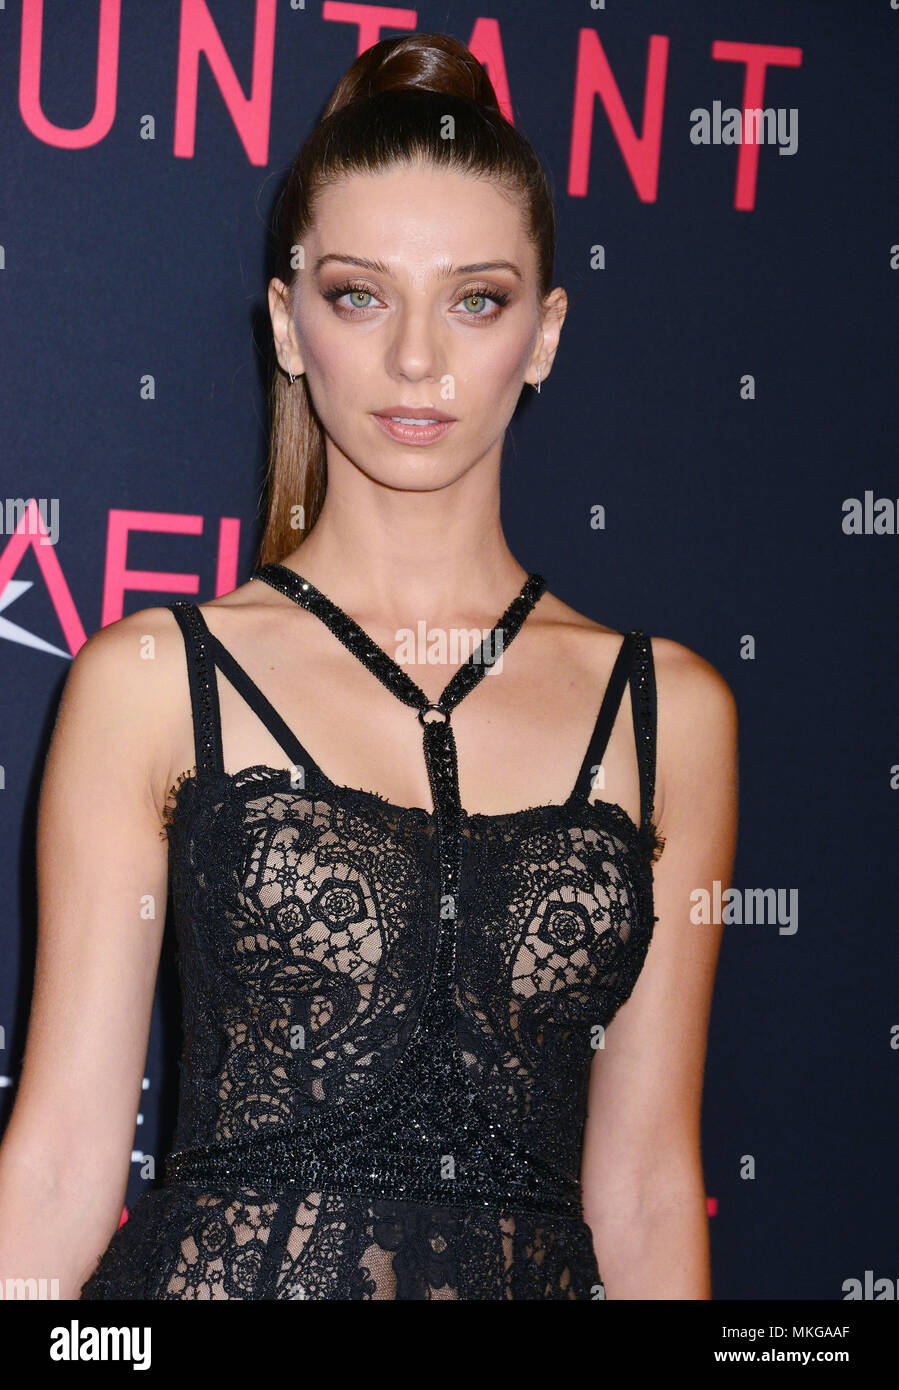 Celebrity Angela Sarafyan nude (73 foto and video), Tits, Cleavage, Instagram, cameltoe 2017